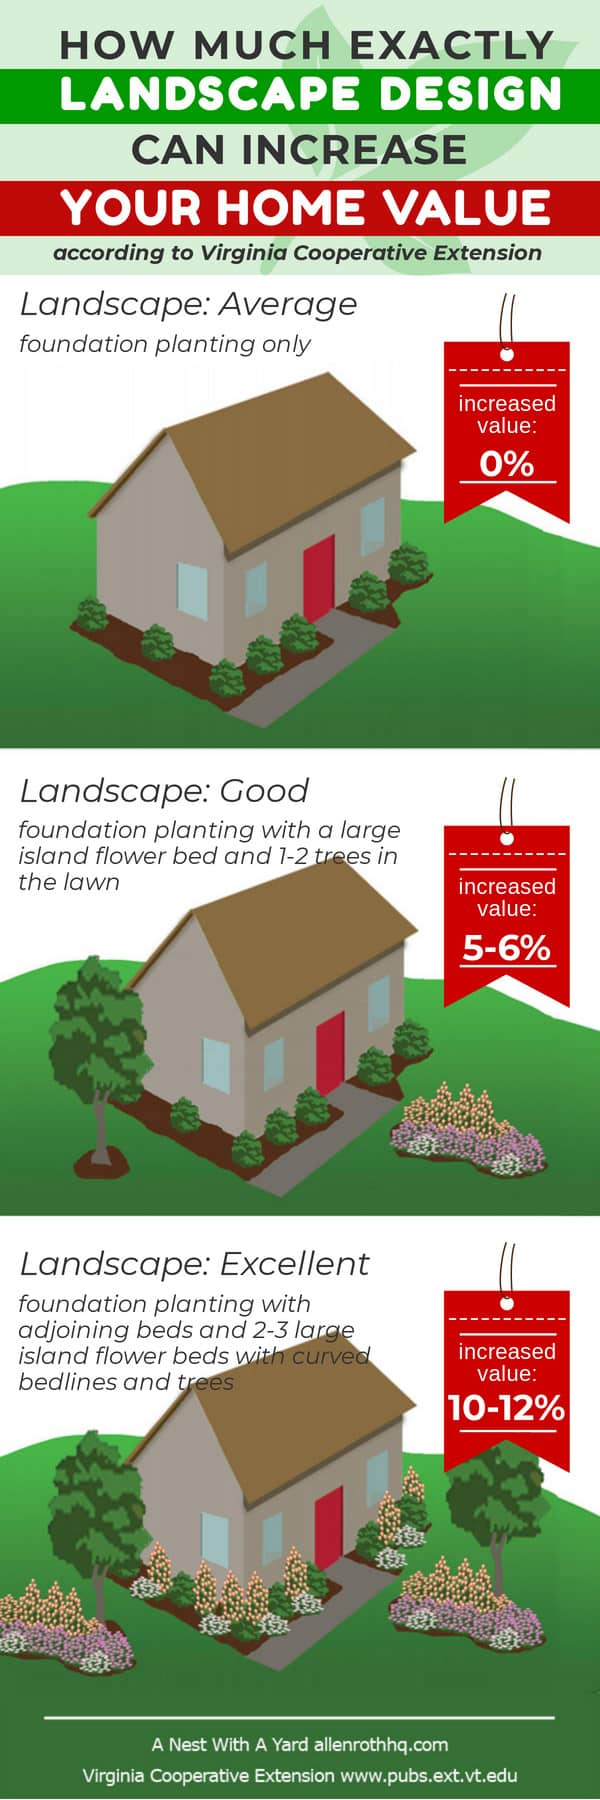 How much exactly landscape design can increase your home value based on a research by Virginia Cooperative Extension